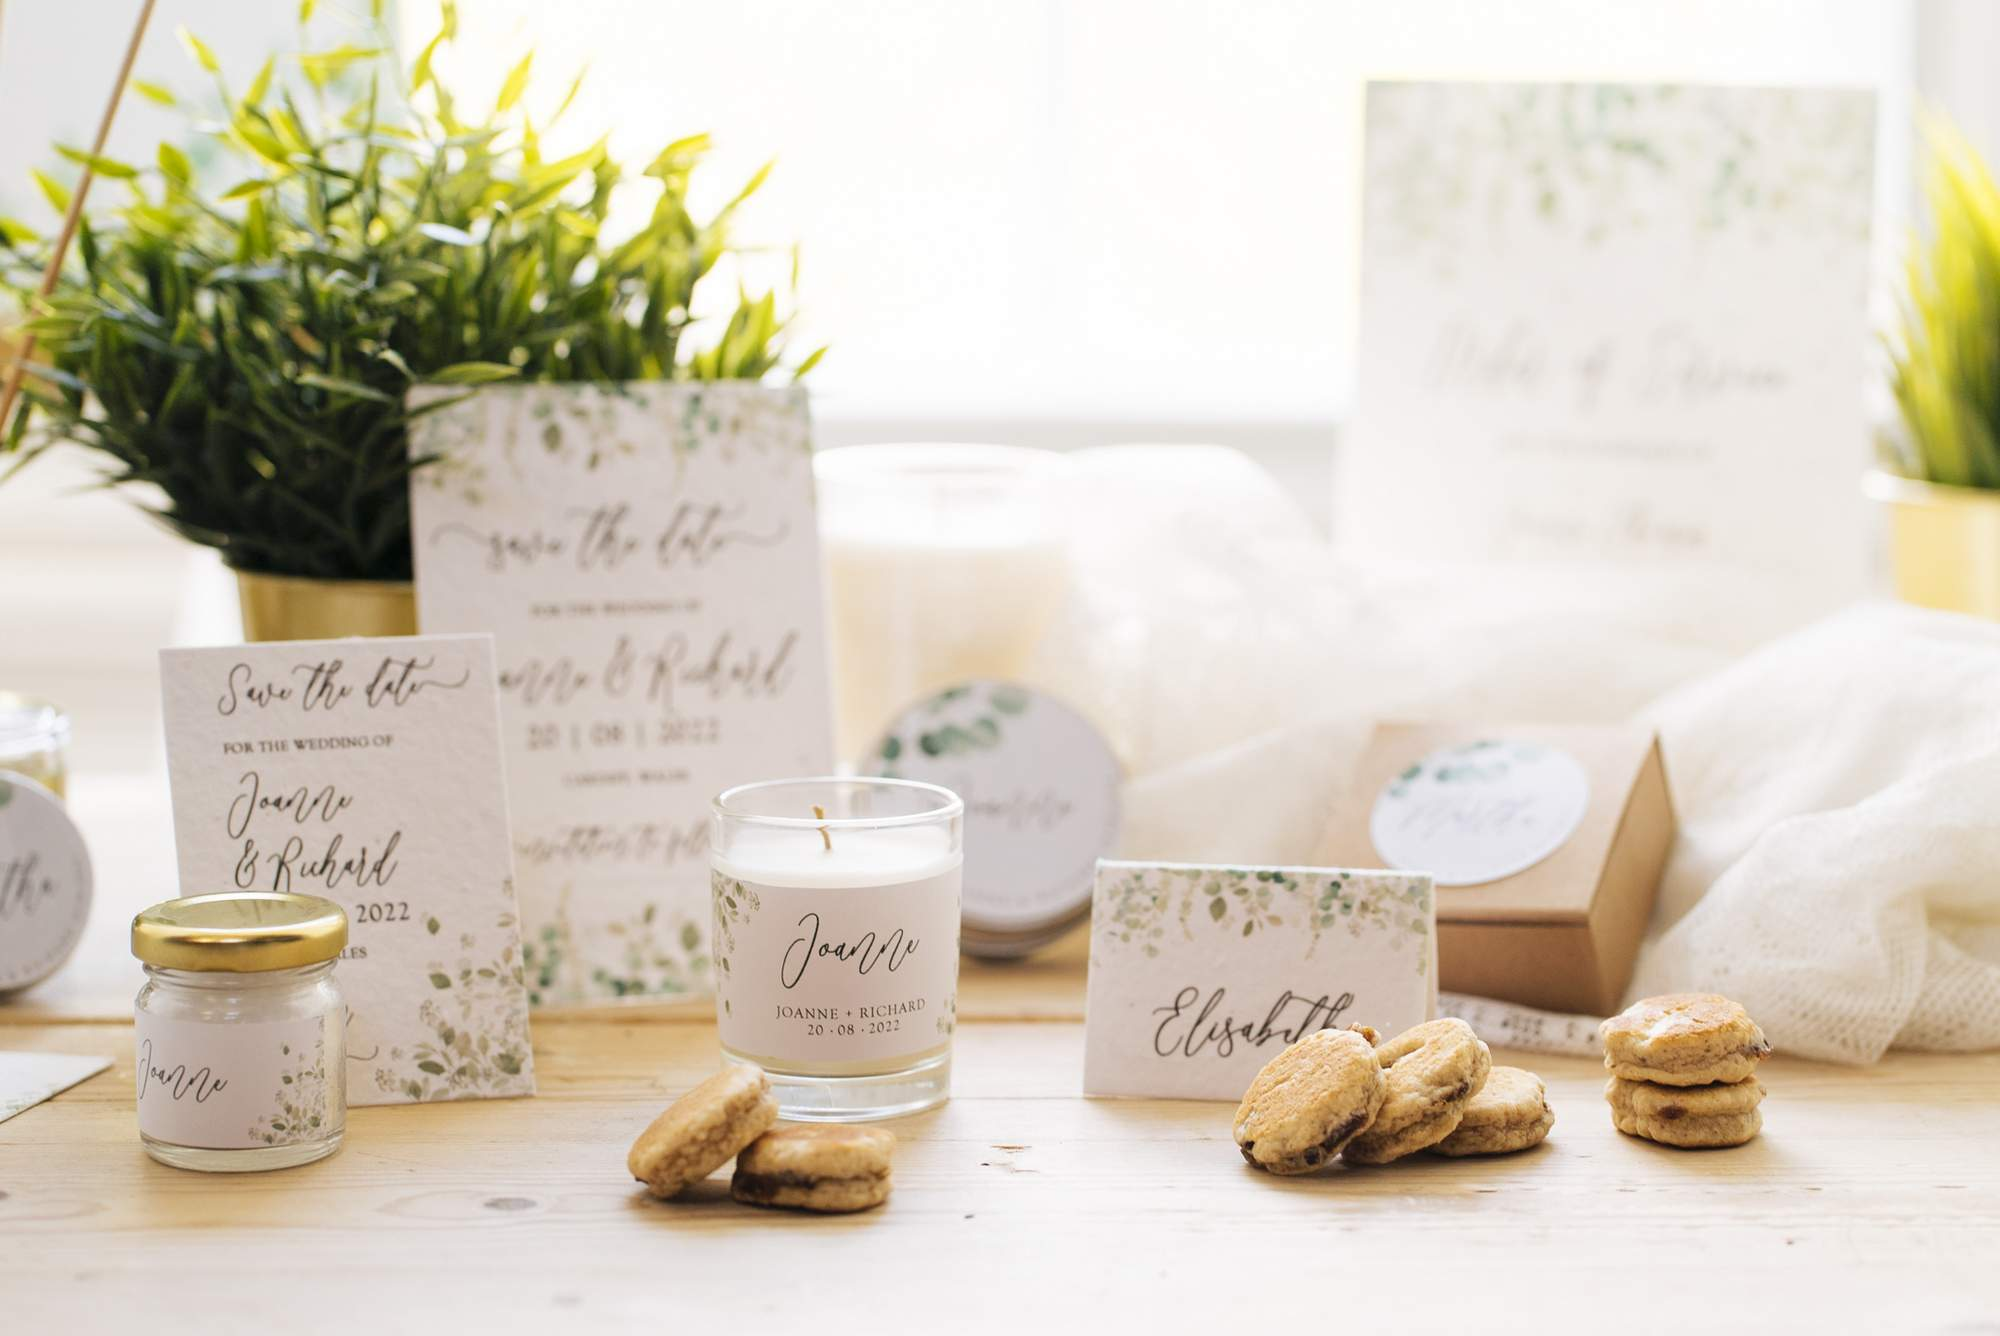 zero waste, eco friendly wedding stationery and favours with a greenery design